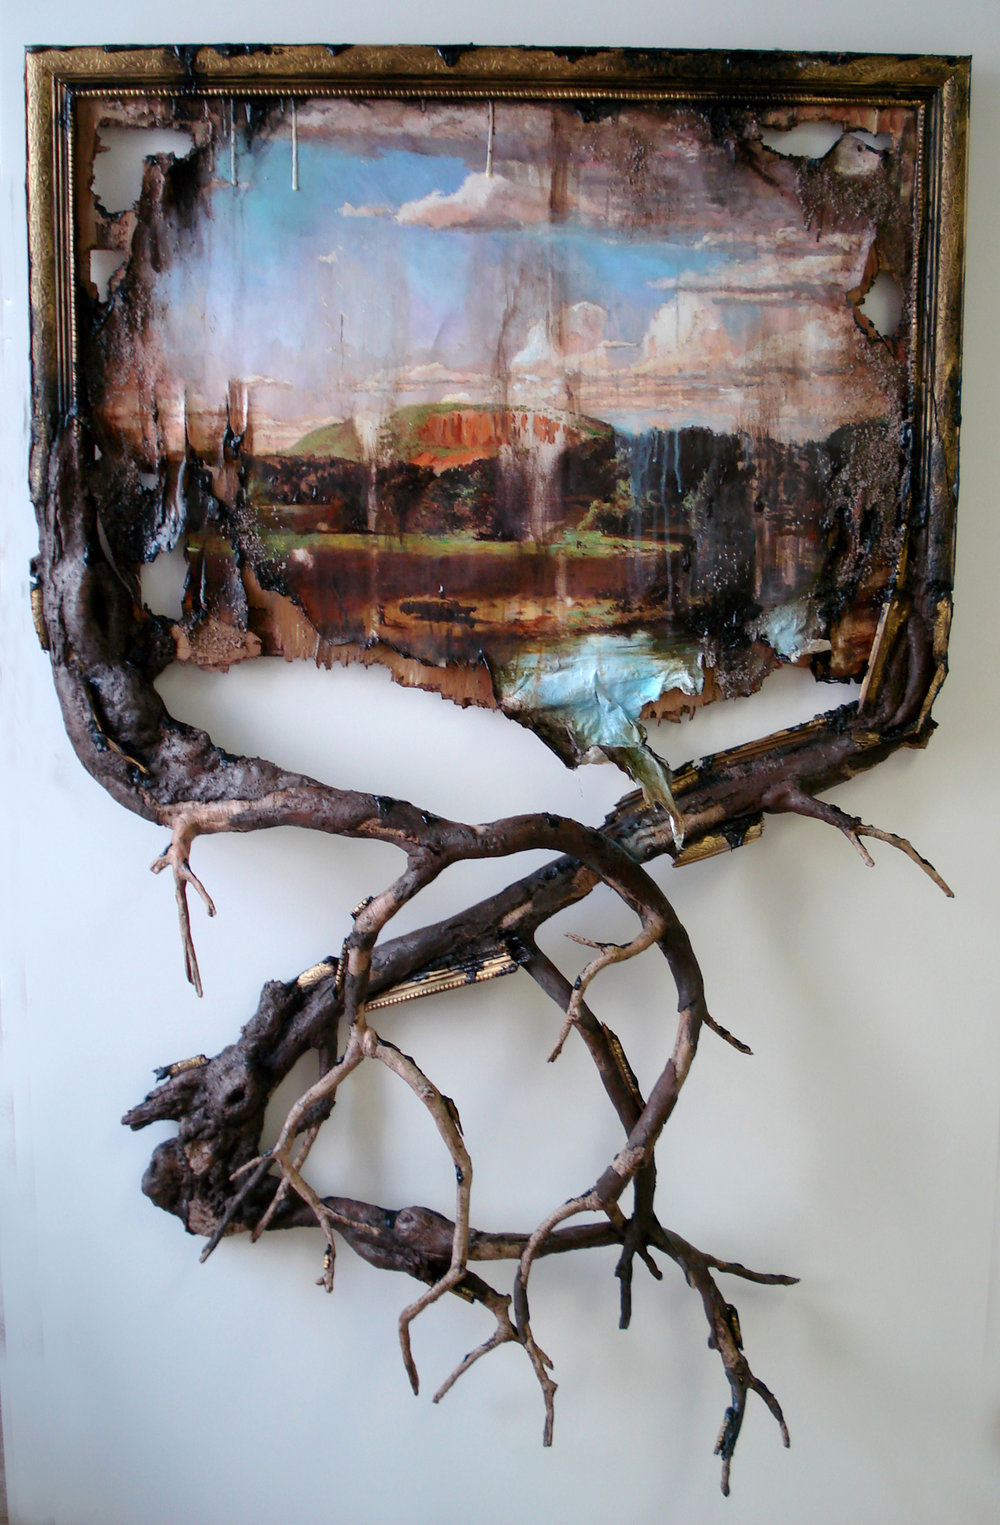 West Rock with Branches, wood, wire, epoxy, archival print on canvas, acrylic paint, gel mediums, sand, glue, hardware, 2012, Commission for: New Britain Museum of American Art